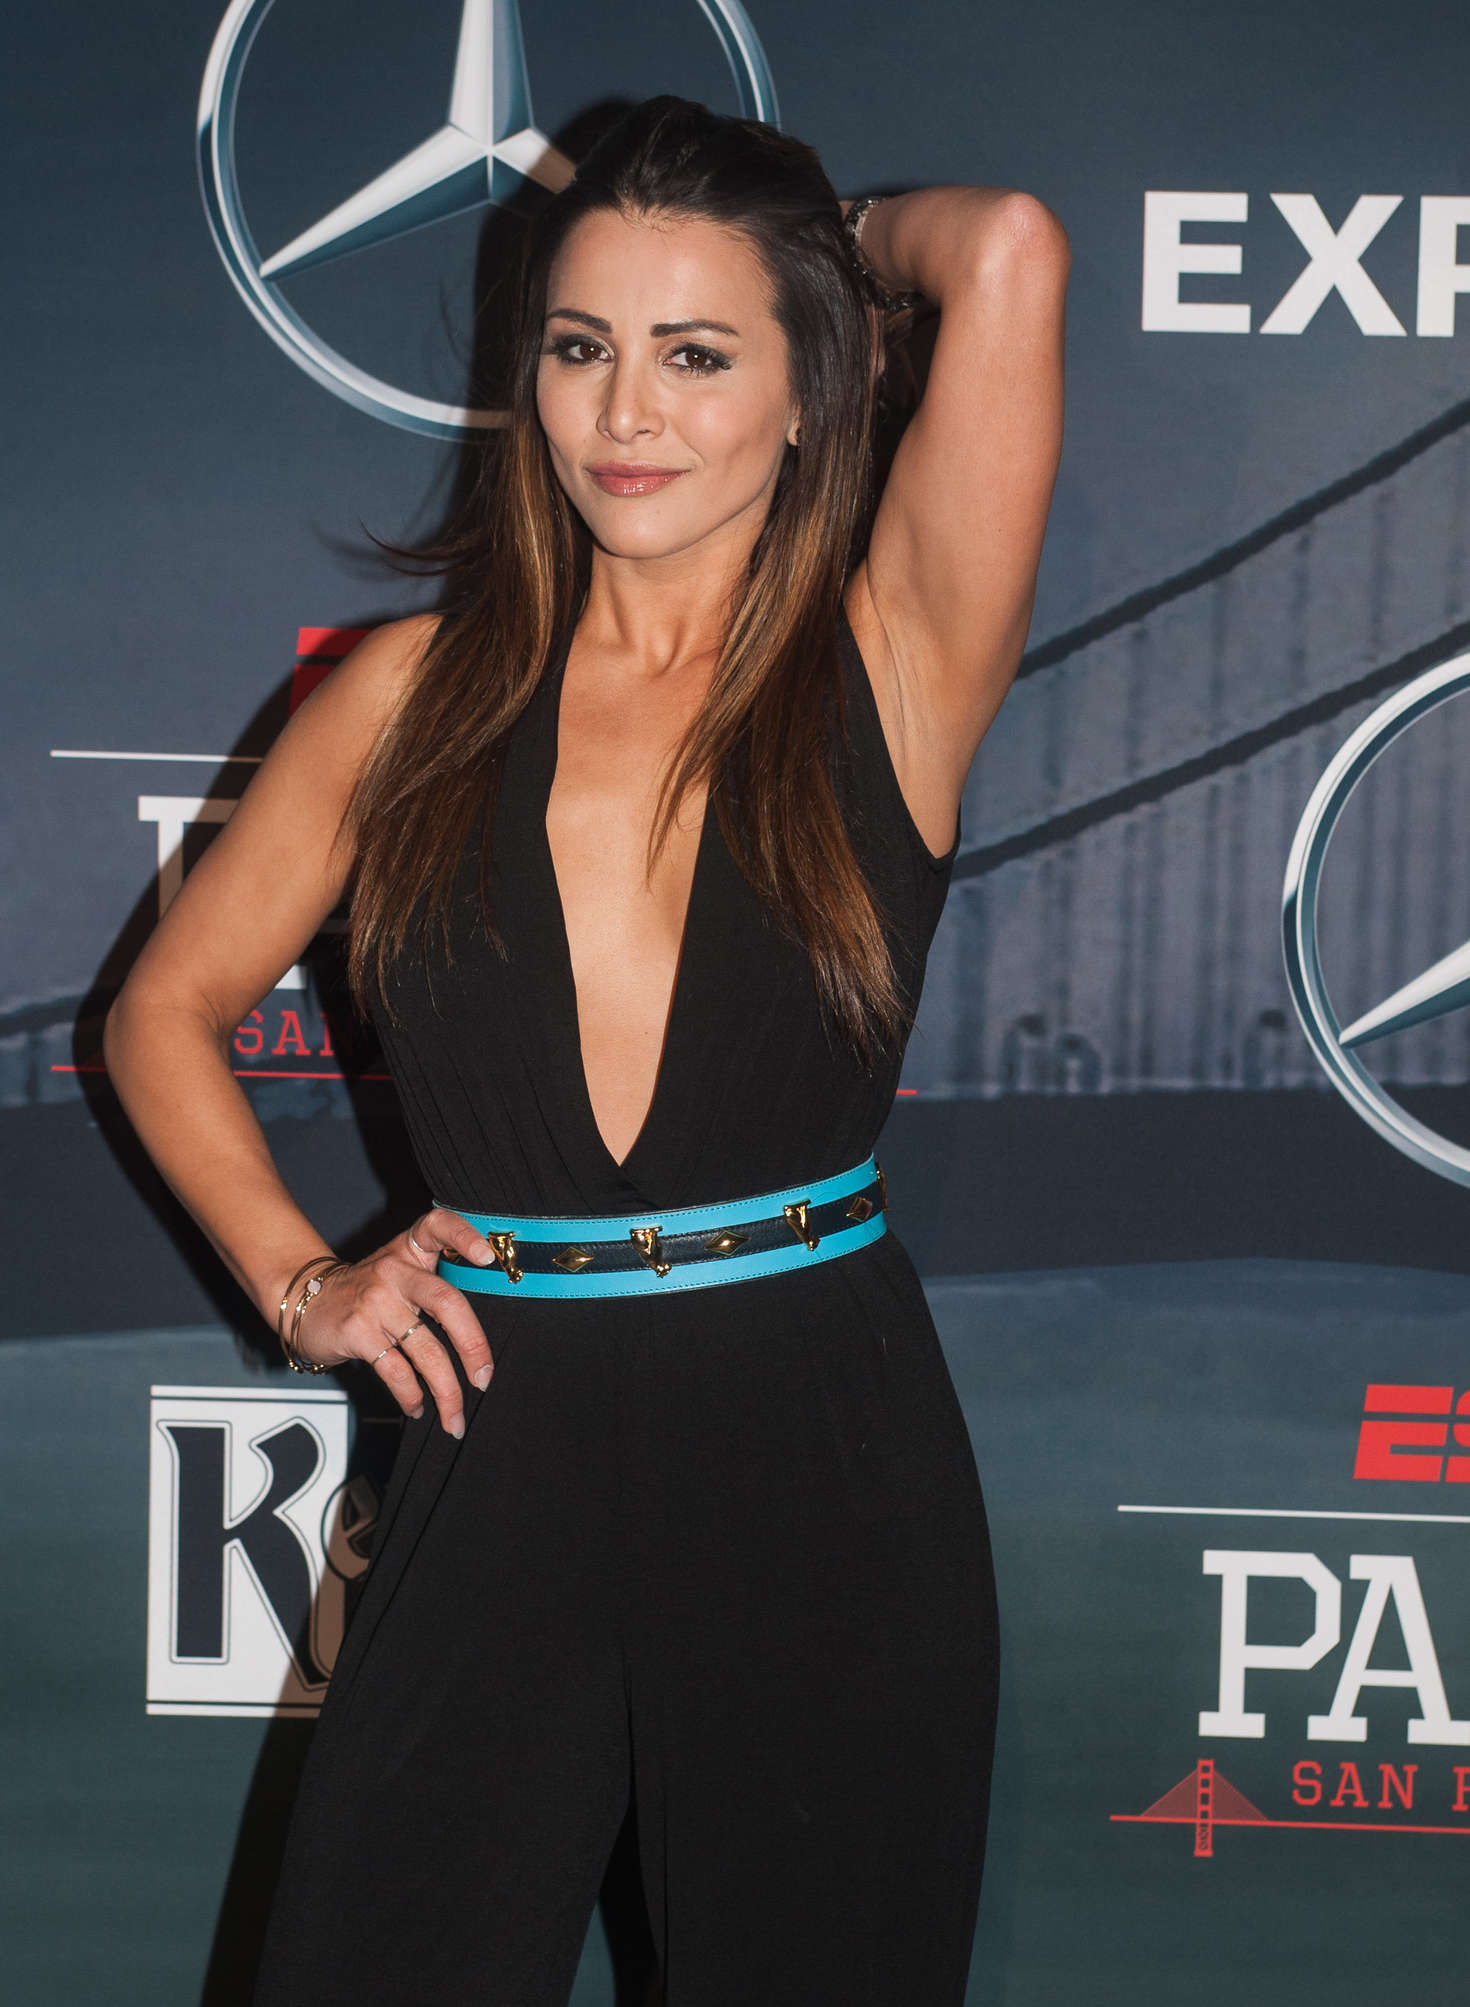 Andi Dorfman Annual ESPN The Party For Super Bowl in San Francisco